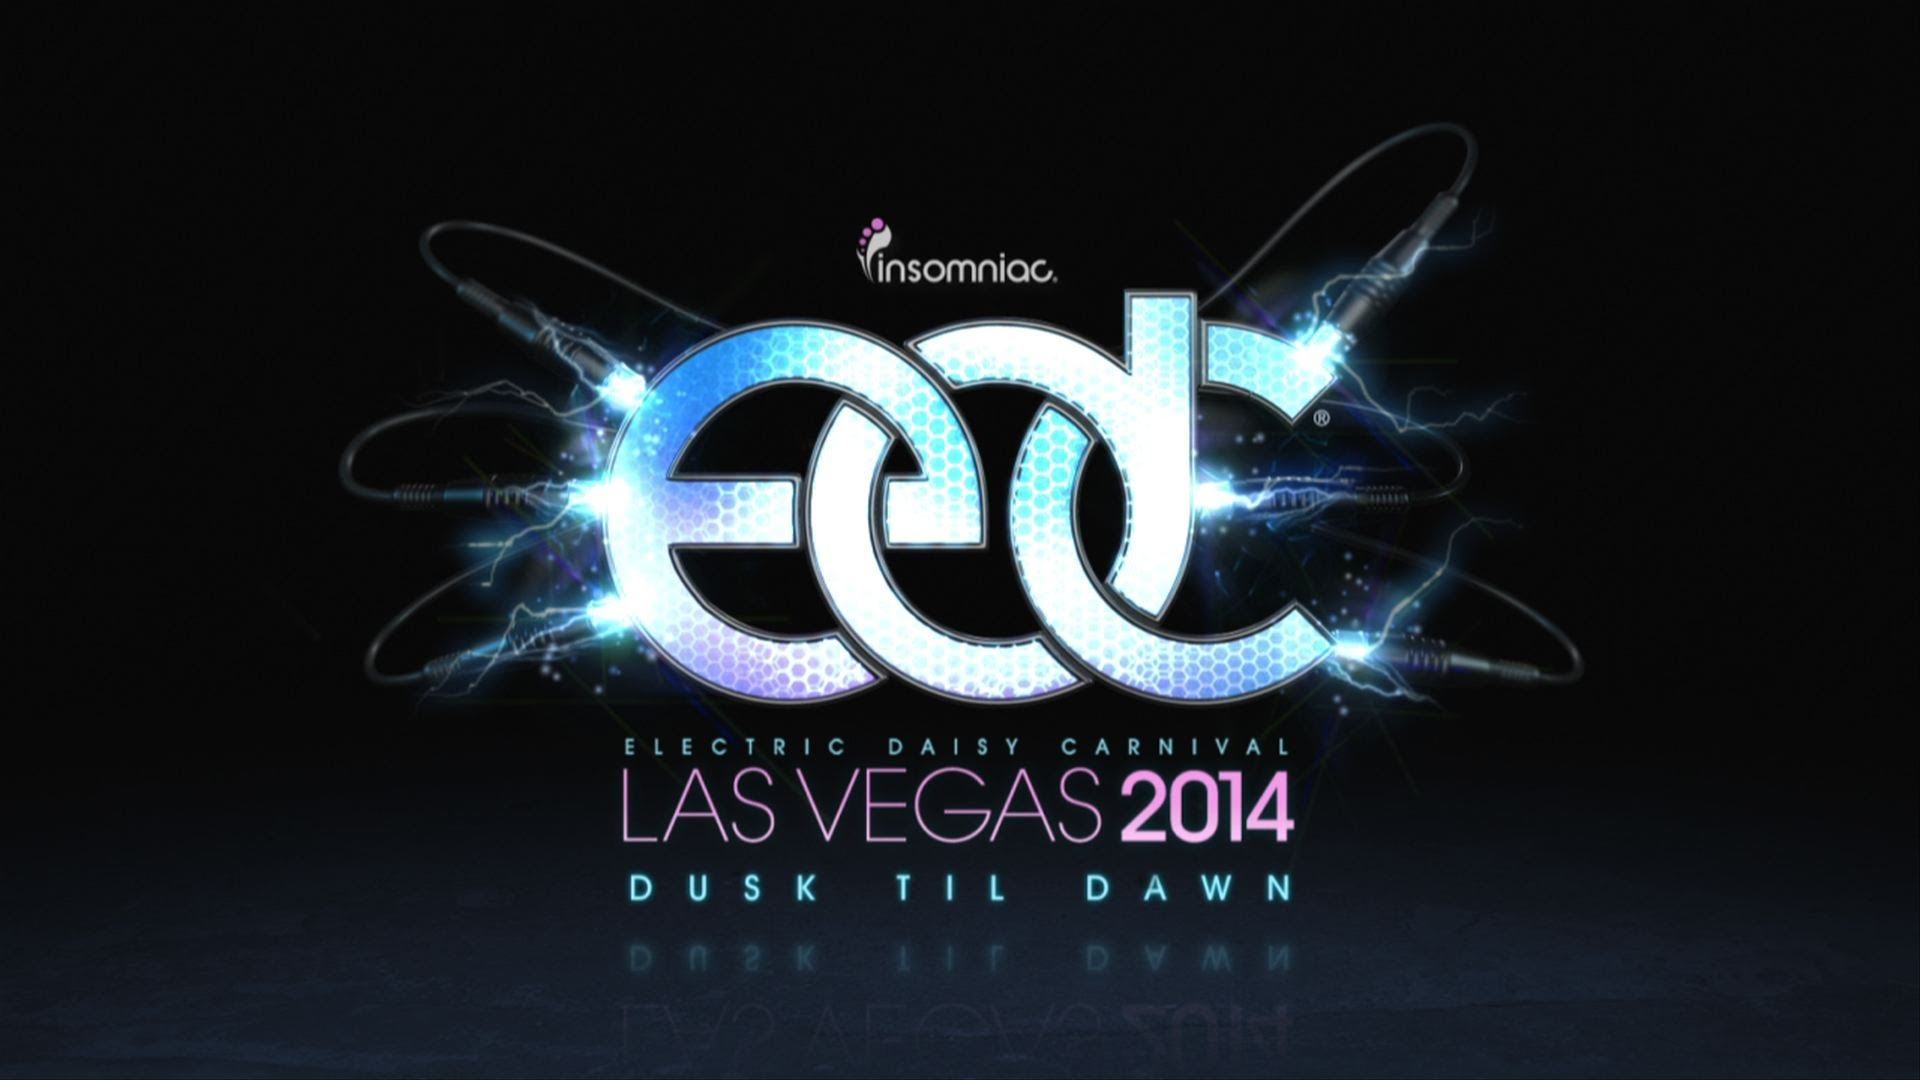 Infected Mushroom Songs Delightful 10 songs we fell in love with at edc las vegas 2014